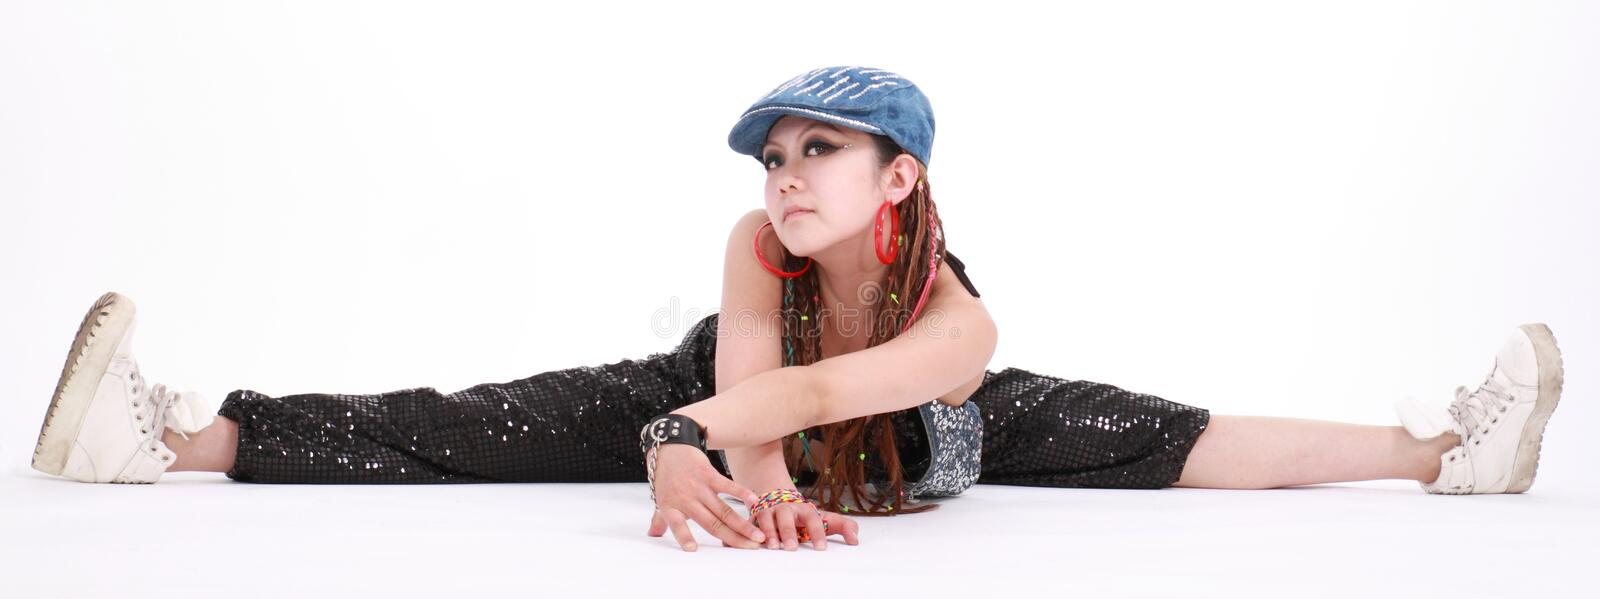 Woman dancer royalty free stock photography